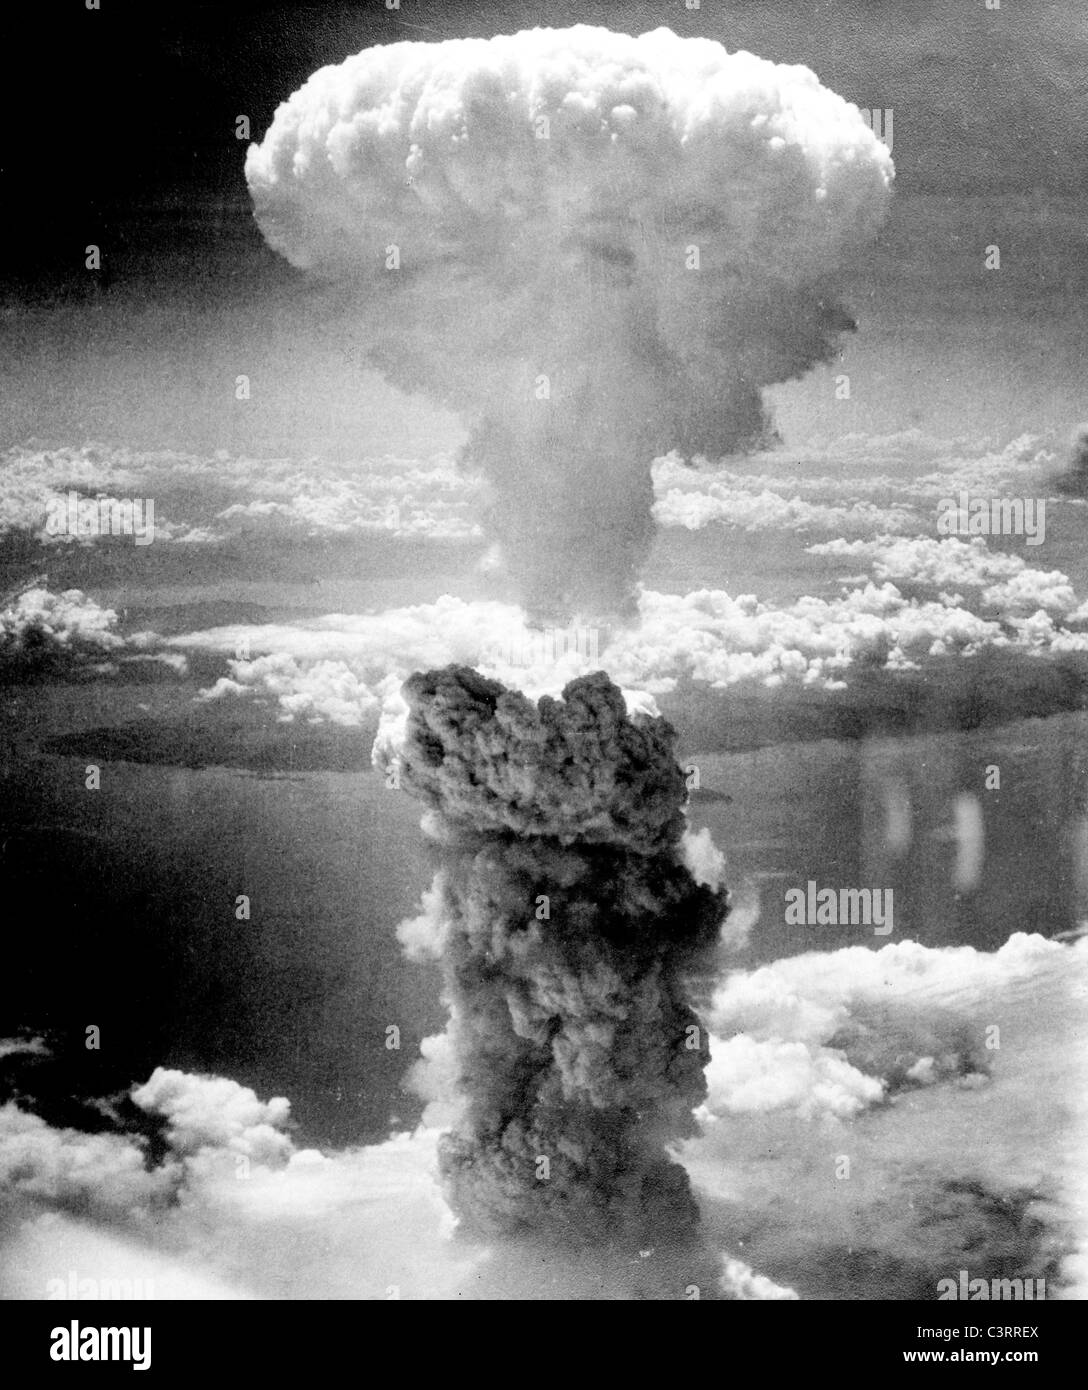 Bombardement atomique de Nagasaki le 9 août 1945. Photo Stock